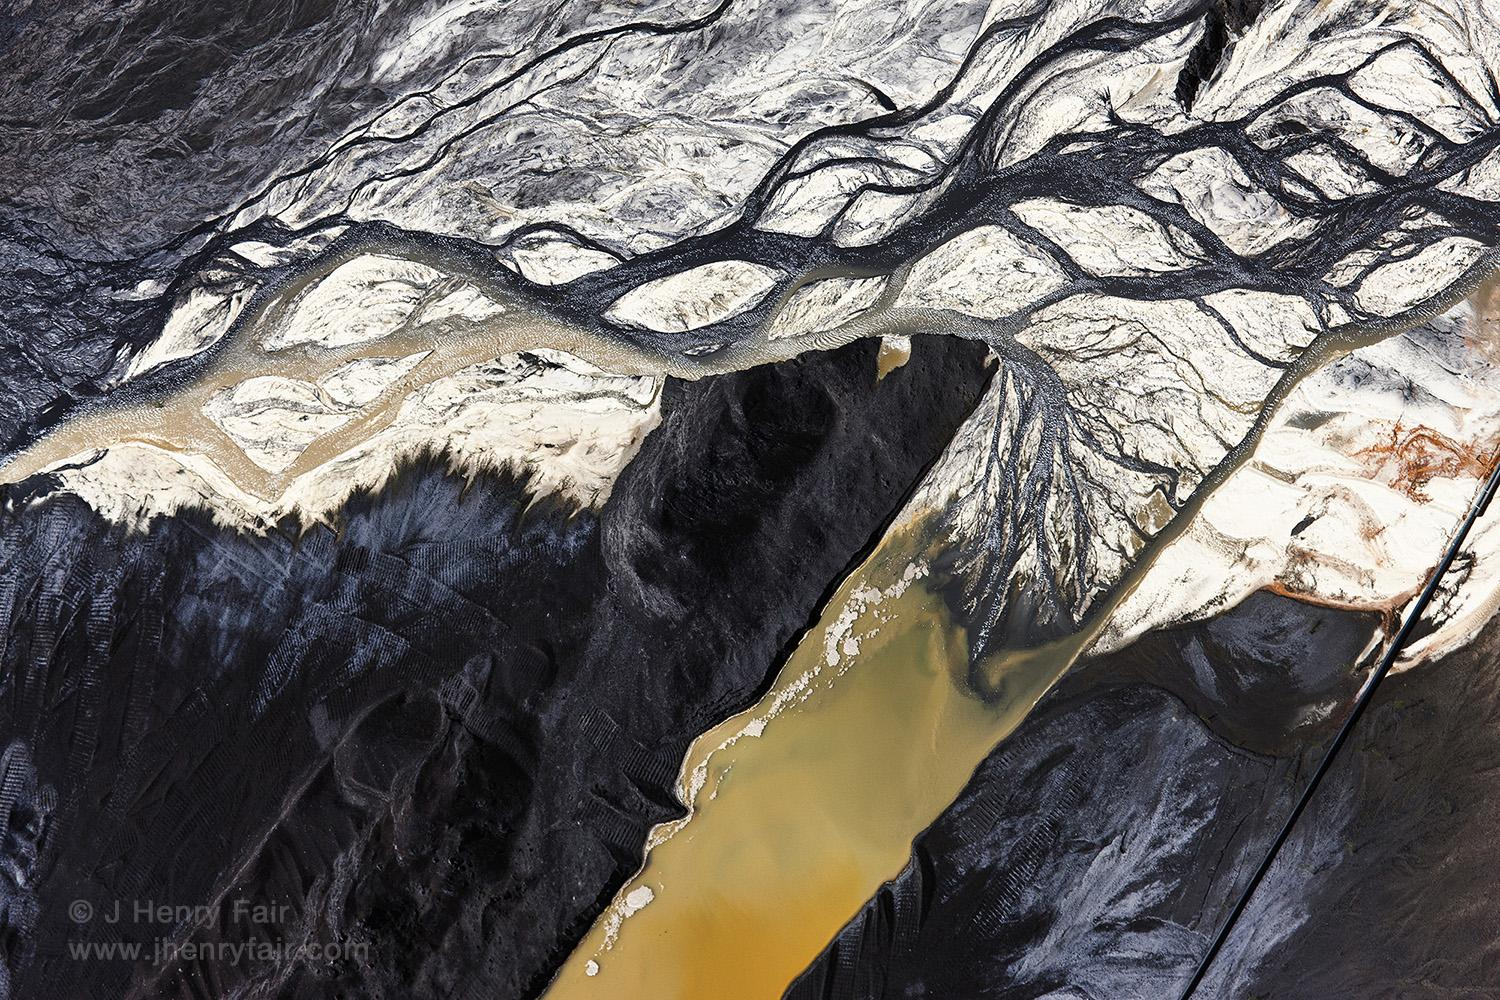 Immiscible, Coal ash and desulfurization waste at power plant in Pineville, South Carolina, USA, 2009.